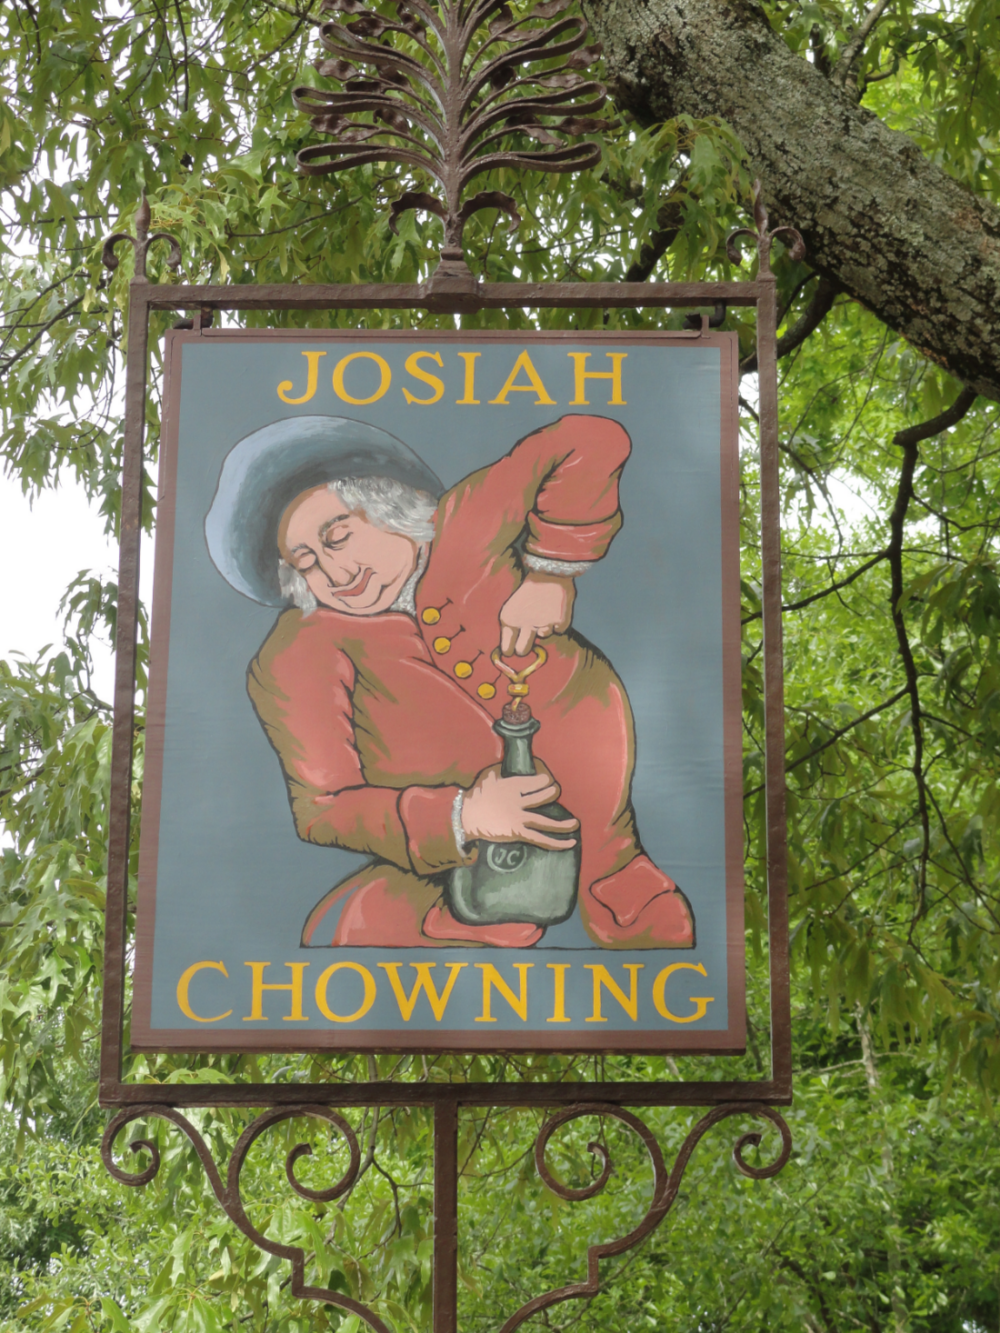 joshia-chowing-inn-in-colonial-williamsburg